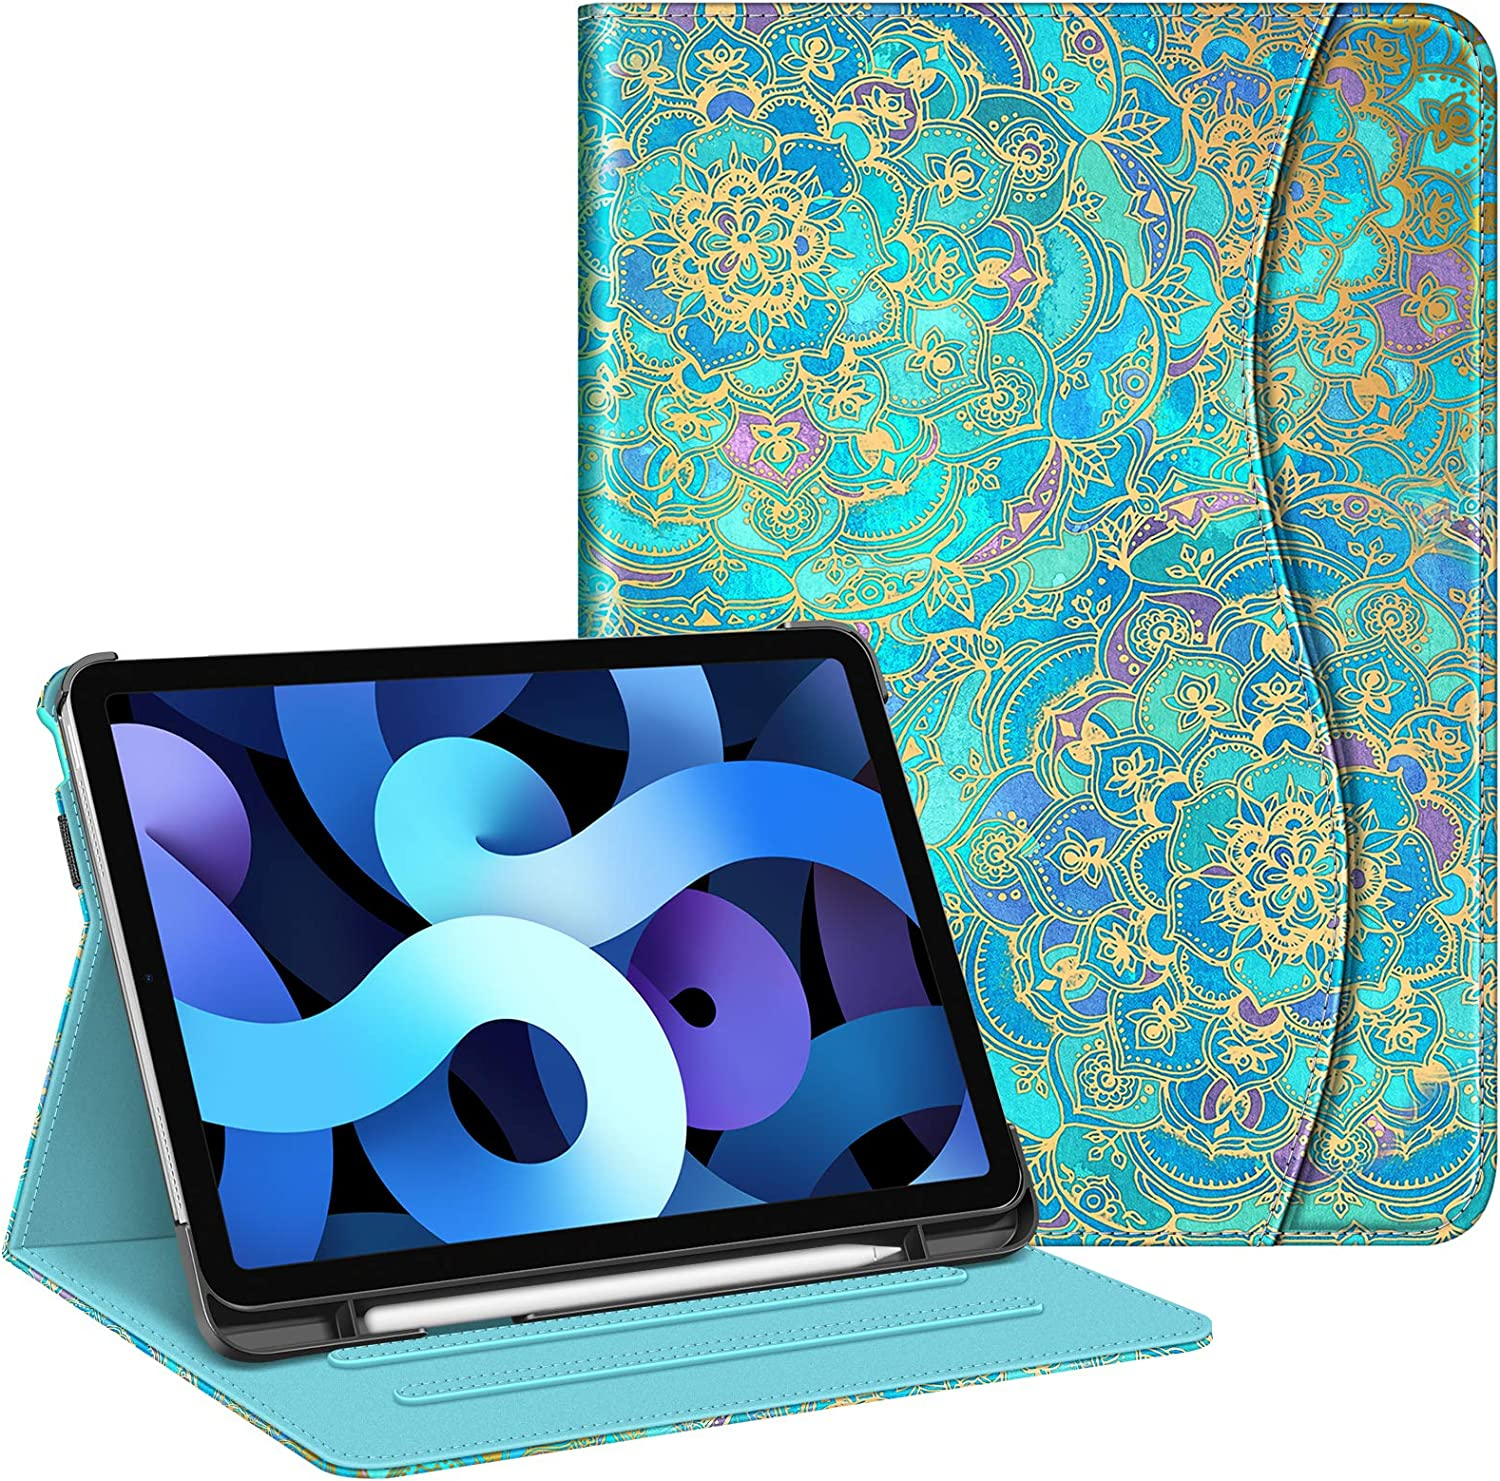 Fintie Case for iPad Air 4 10.9 Inch 2020 with Pencil Holder, Multi-Angle Viewing Cover [Supports Pencil 2nd Gen Charging] with Pocket, Auto Sleep/Wake for iPad Air 4th Generation, Shades of Blue